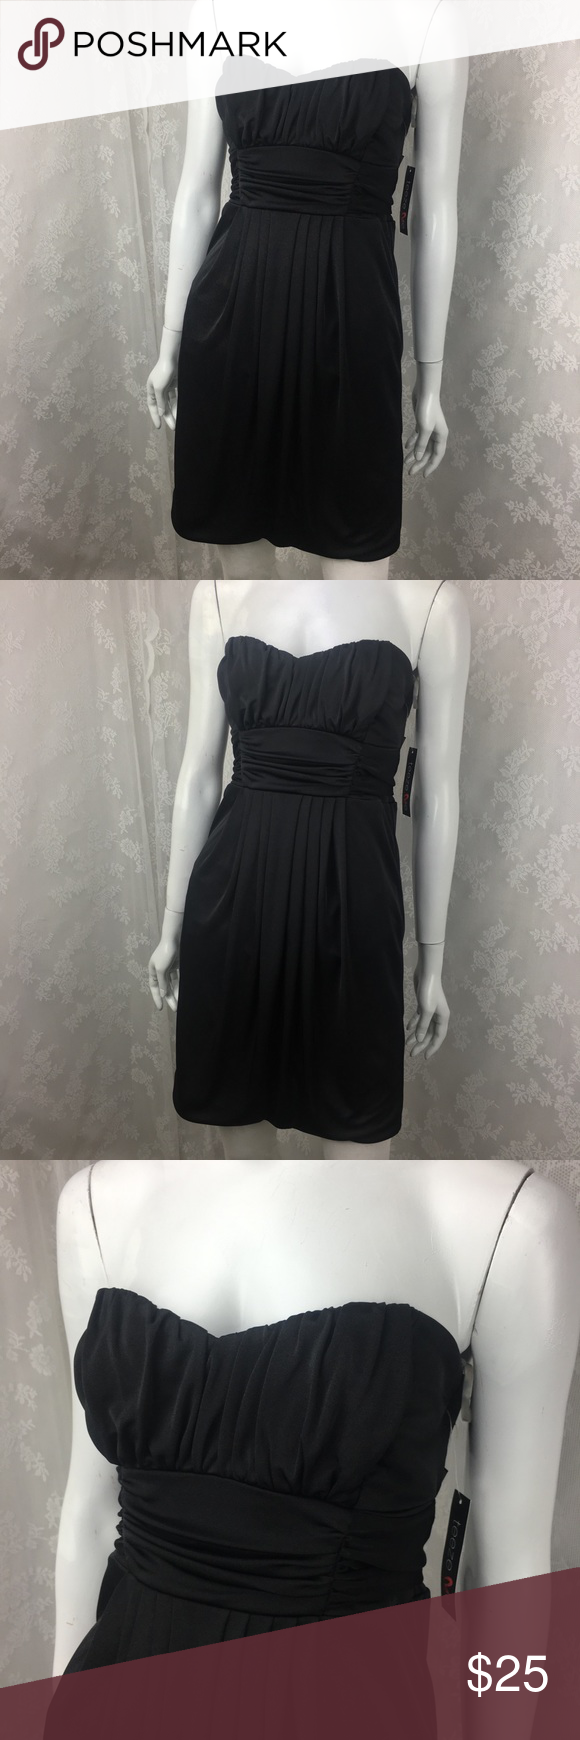 e9e5770d4 Teeze Me Little Black Dress Strapless Gathered Teezeme Size Medium Little  Black Dress Strapless Gathered Tie Back Sweetheart Bust line Bust 15 Length  29 ...